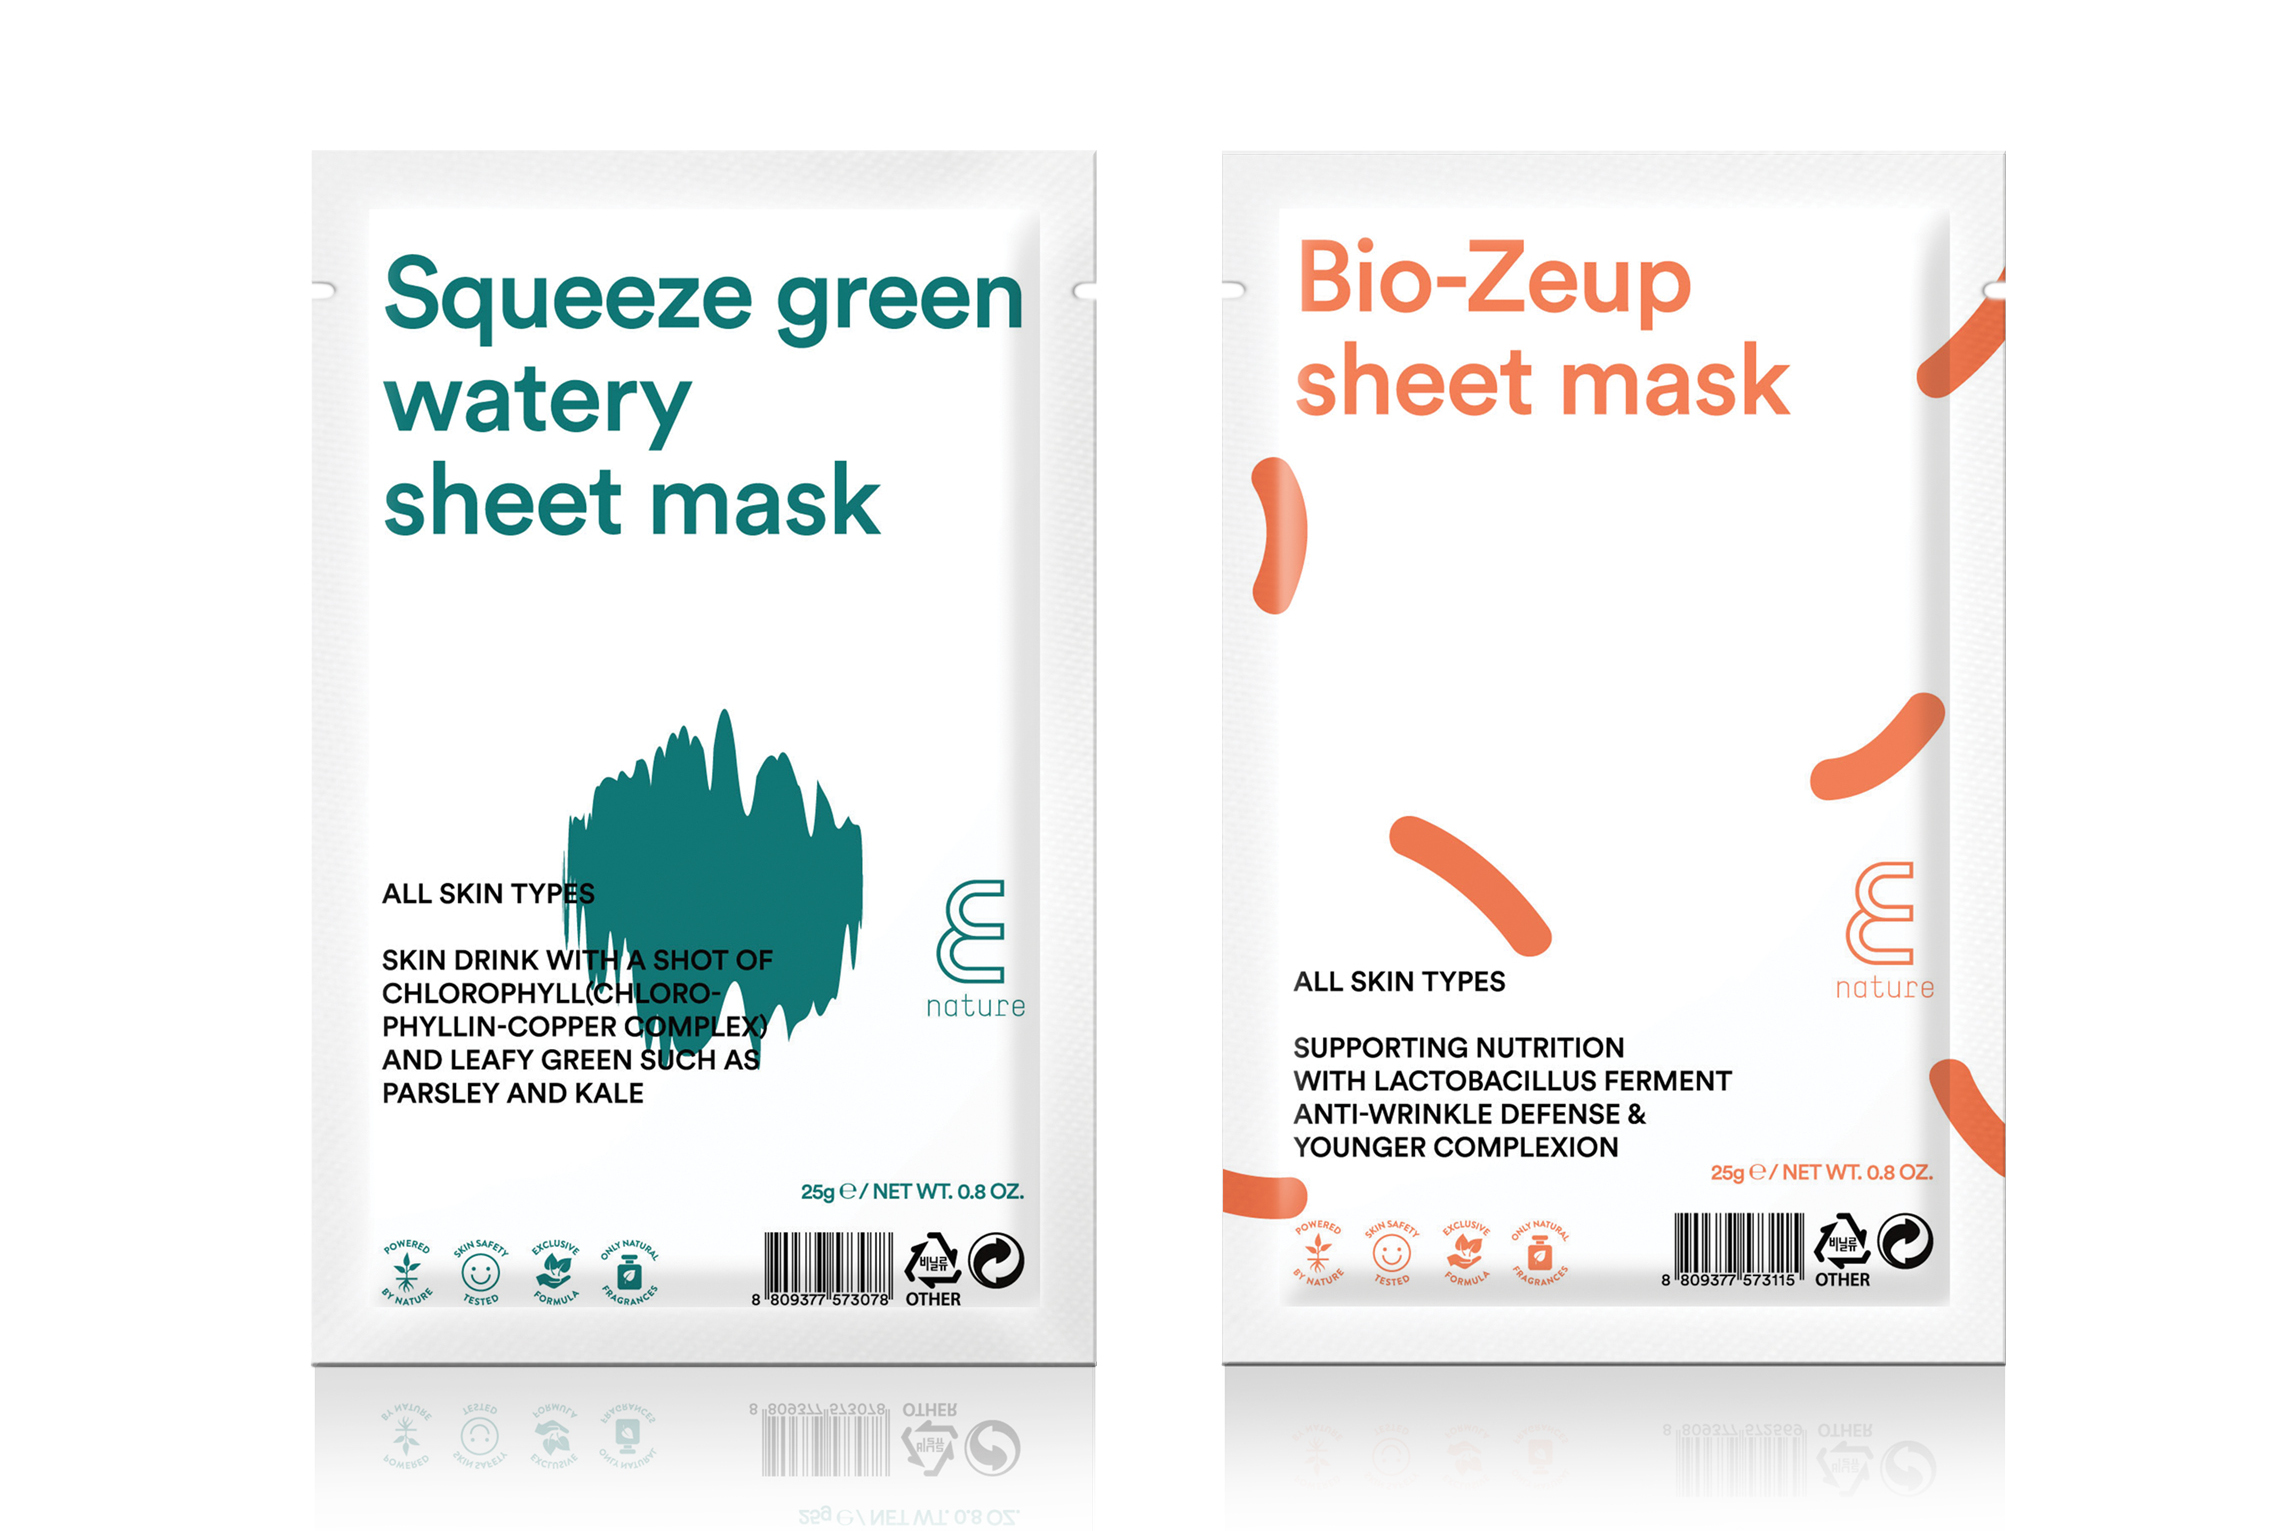 Sheet Masks and Makeup Wipes Getting Sustainable Makeover